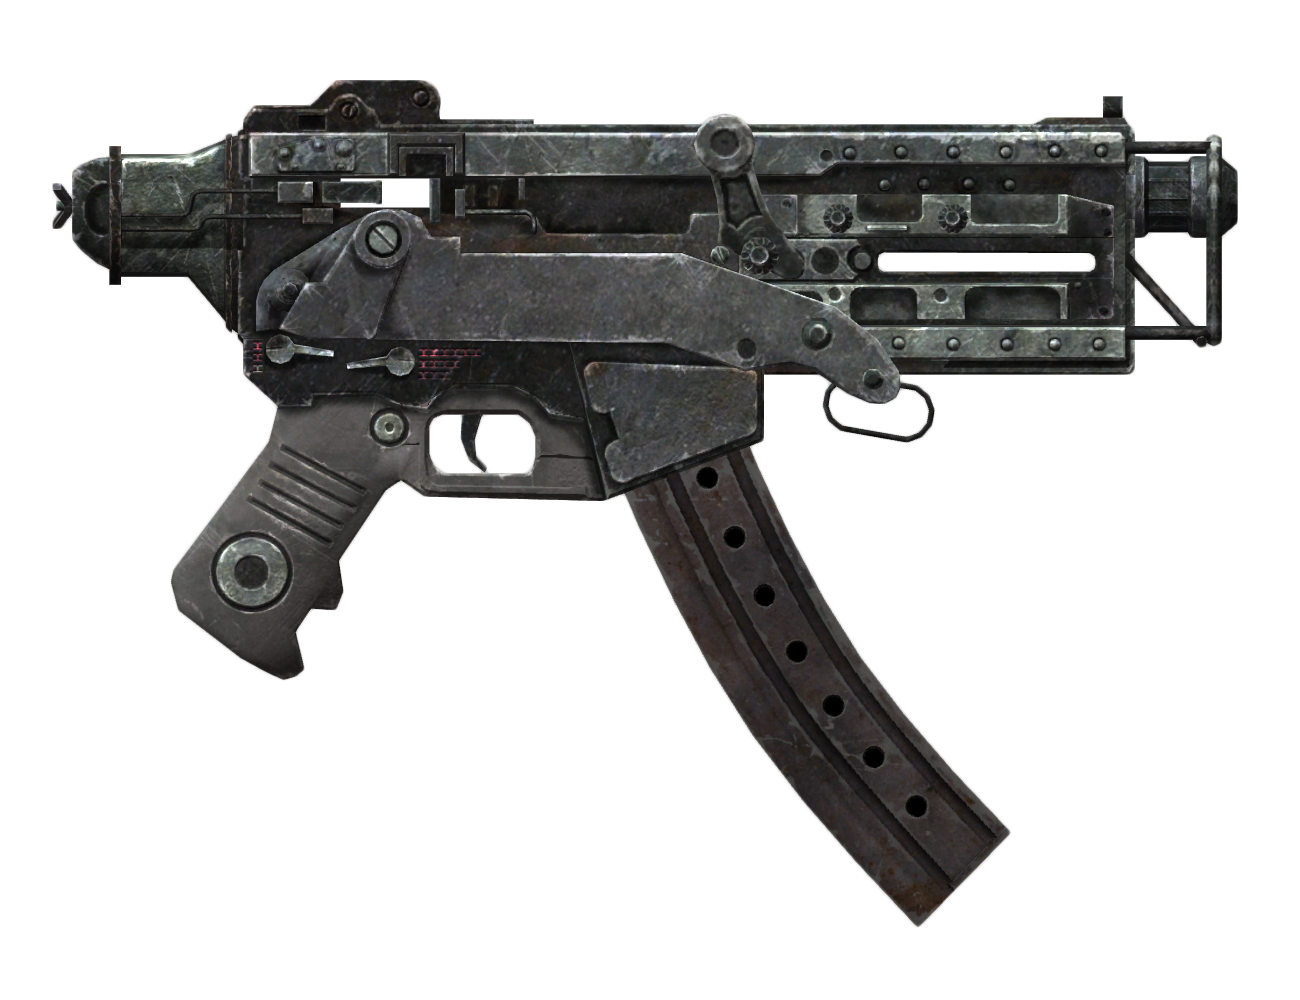 10mm SMG with extended mag